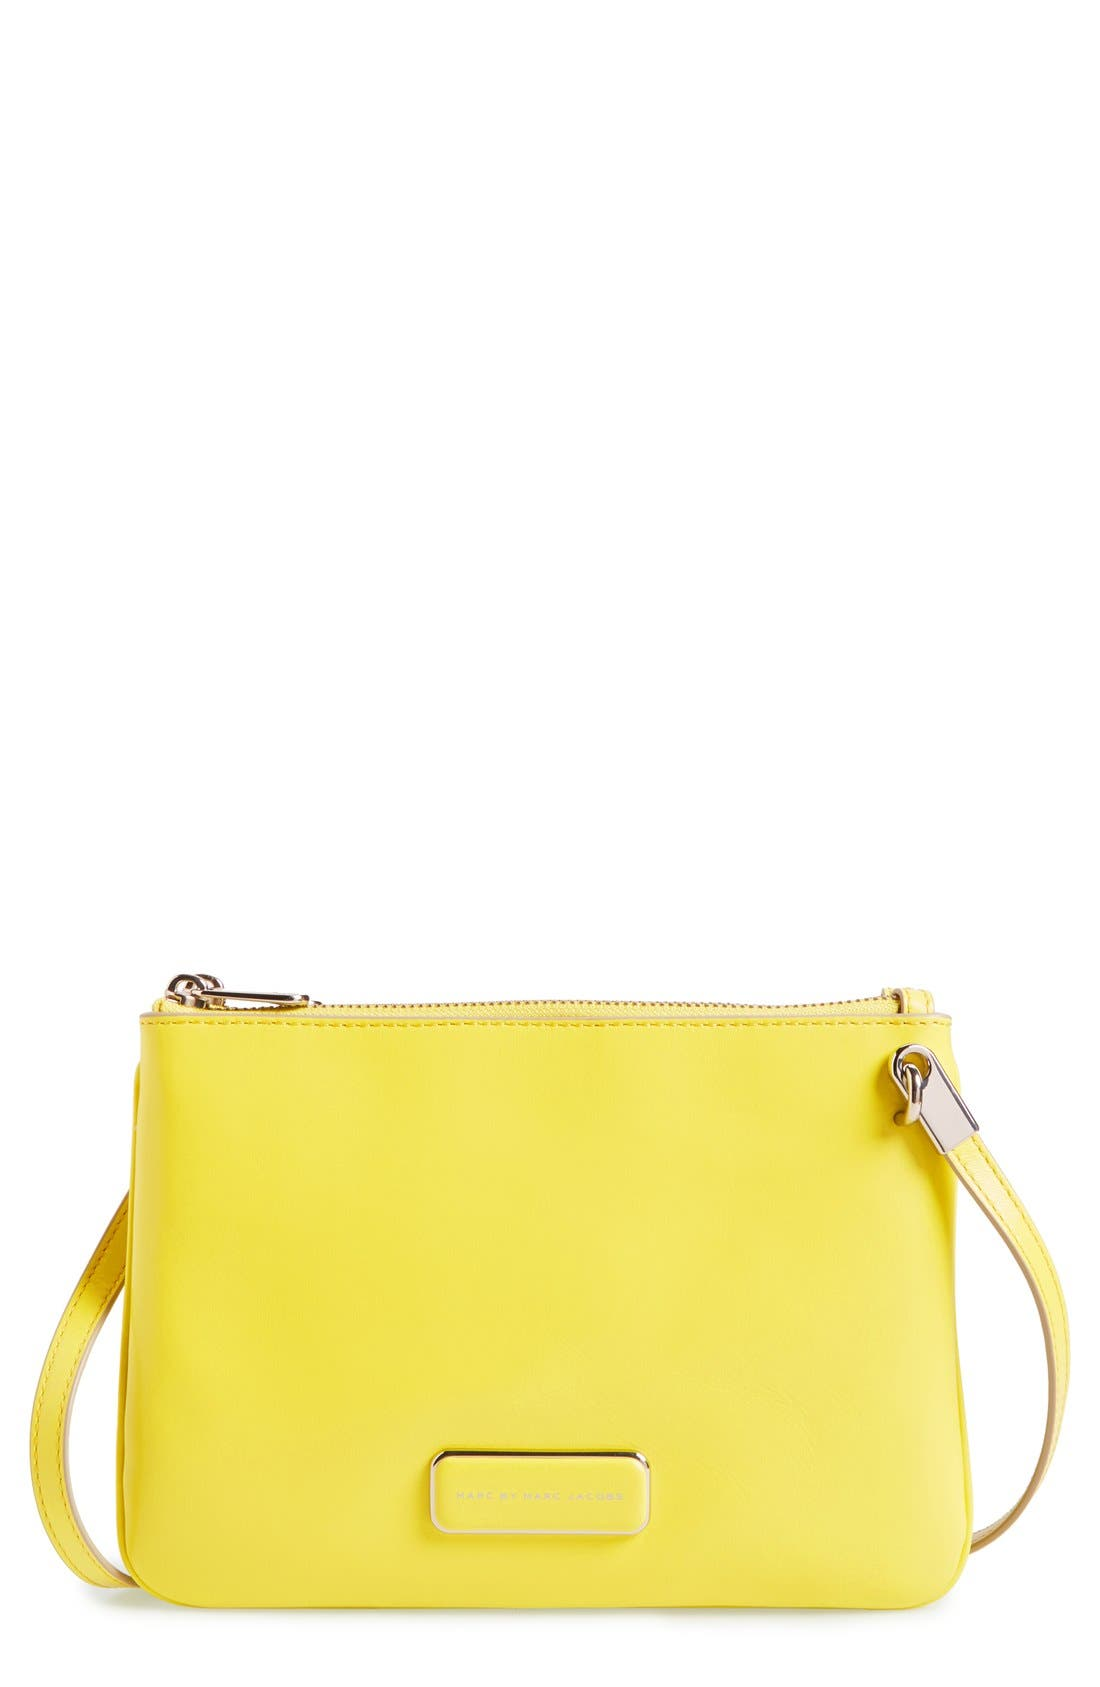 Alternate Image 1 Selected - MARC BY MARC JACOBS 'Double Percy' Crossbody Bag